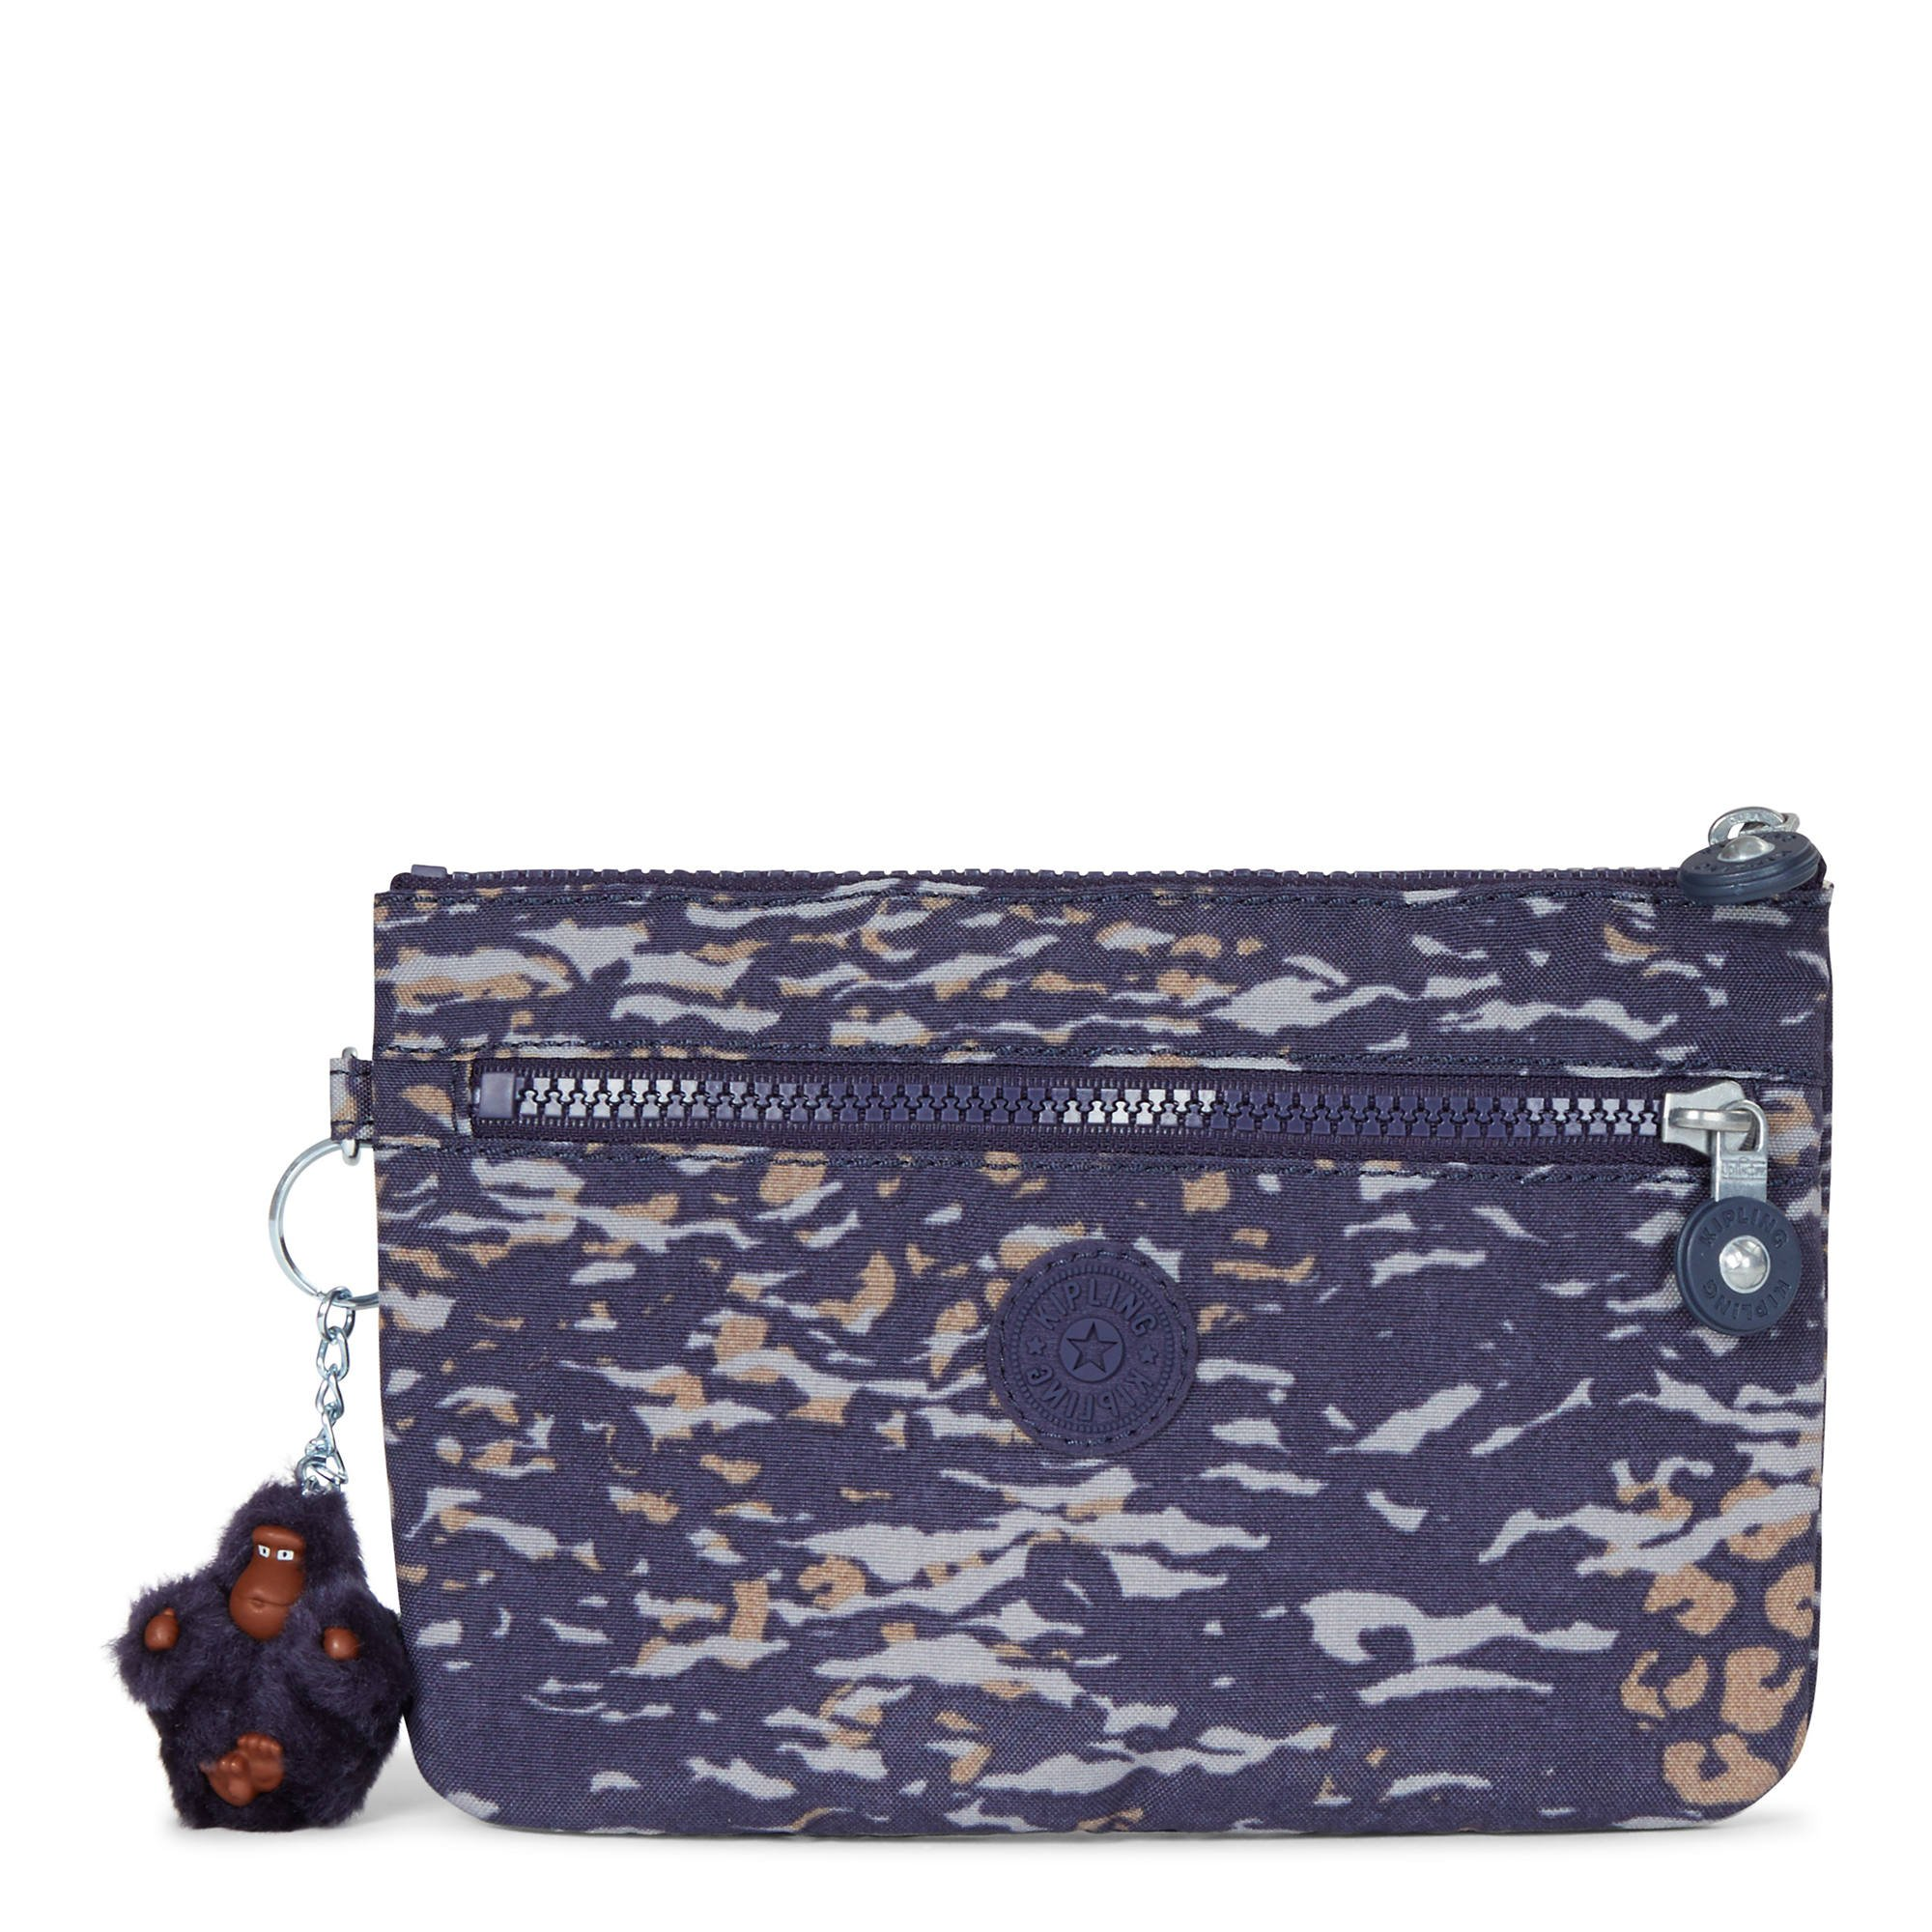 Kipling Women's Ness Small Printed Pouch One Size Water Camo